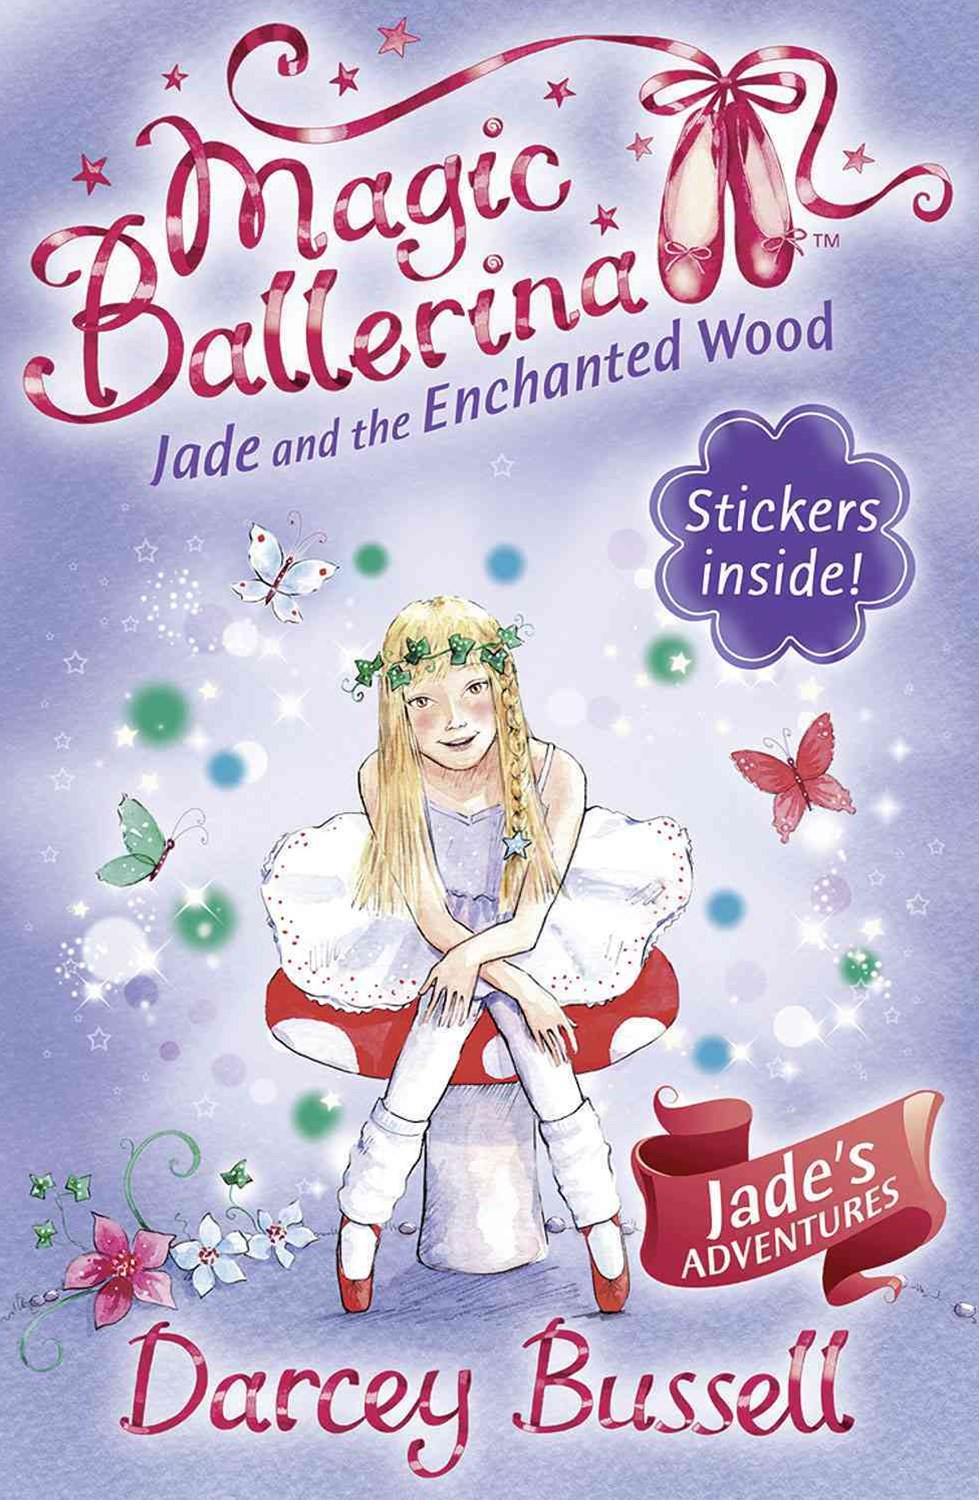 Magic Ballerina: Jade and the Enchanted Wood